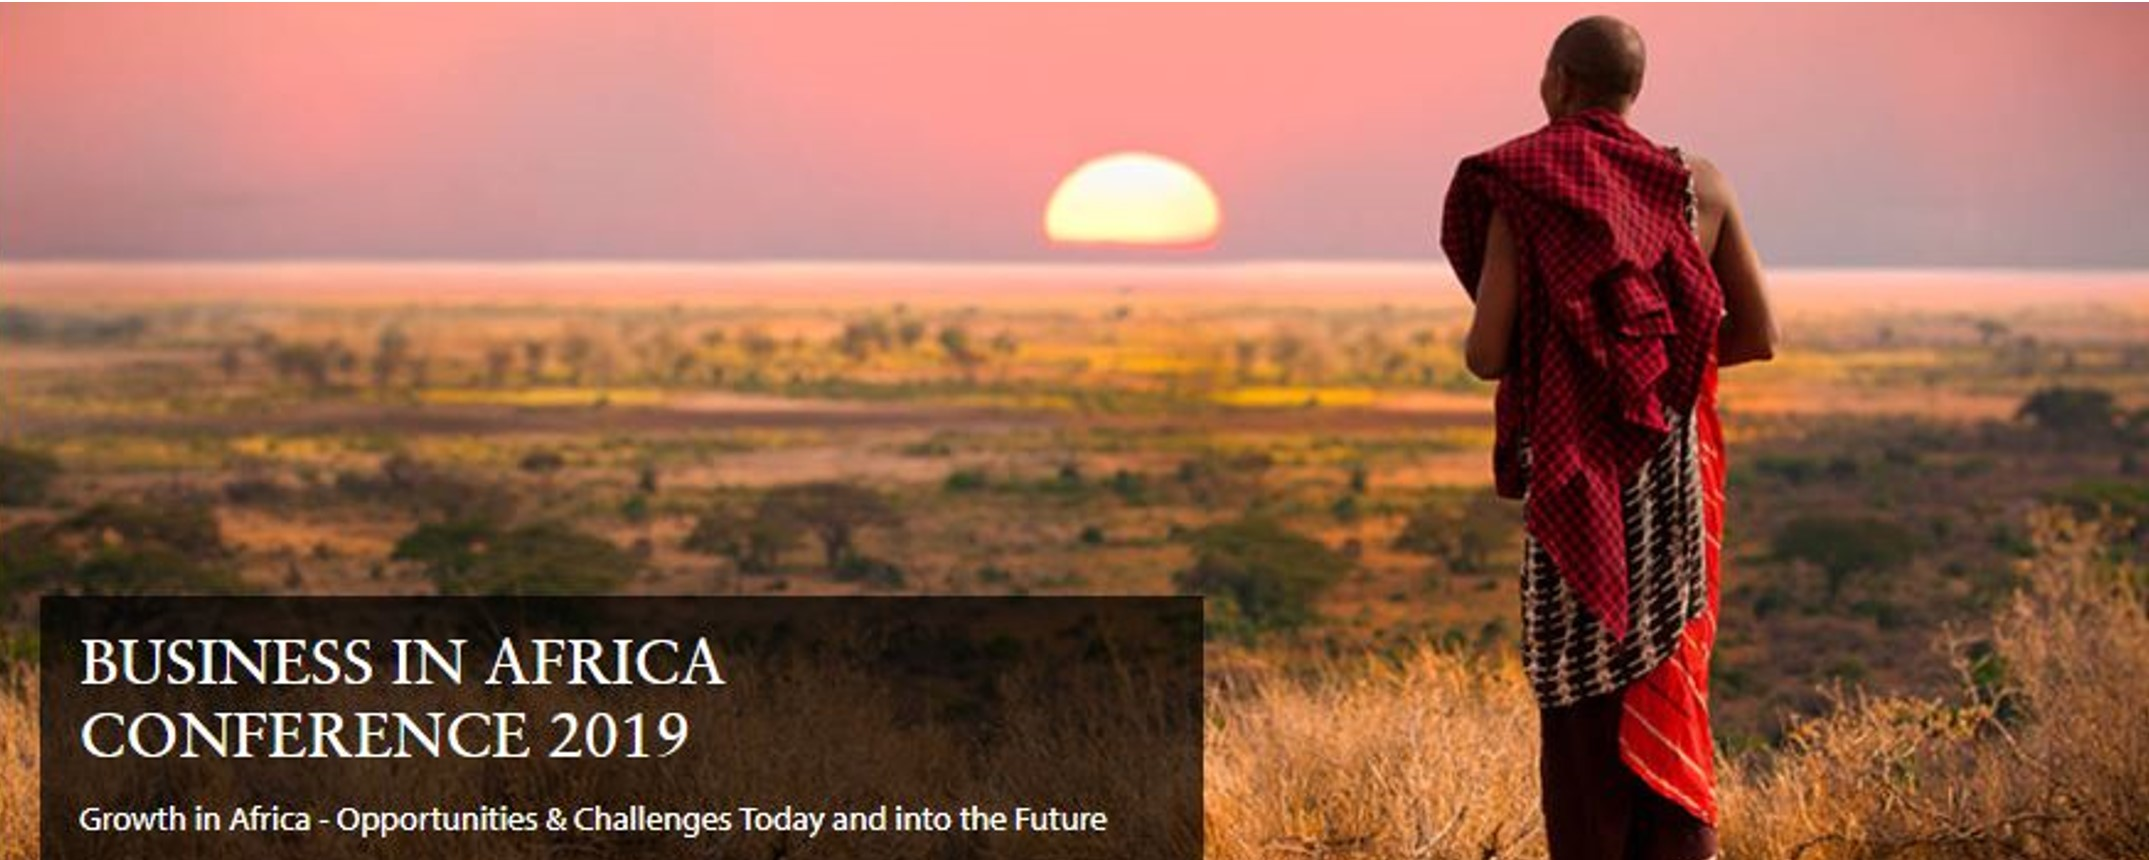 Cambridge Africa Business Network - Business in Africa Conference 2019 Movemeback African event cover image